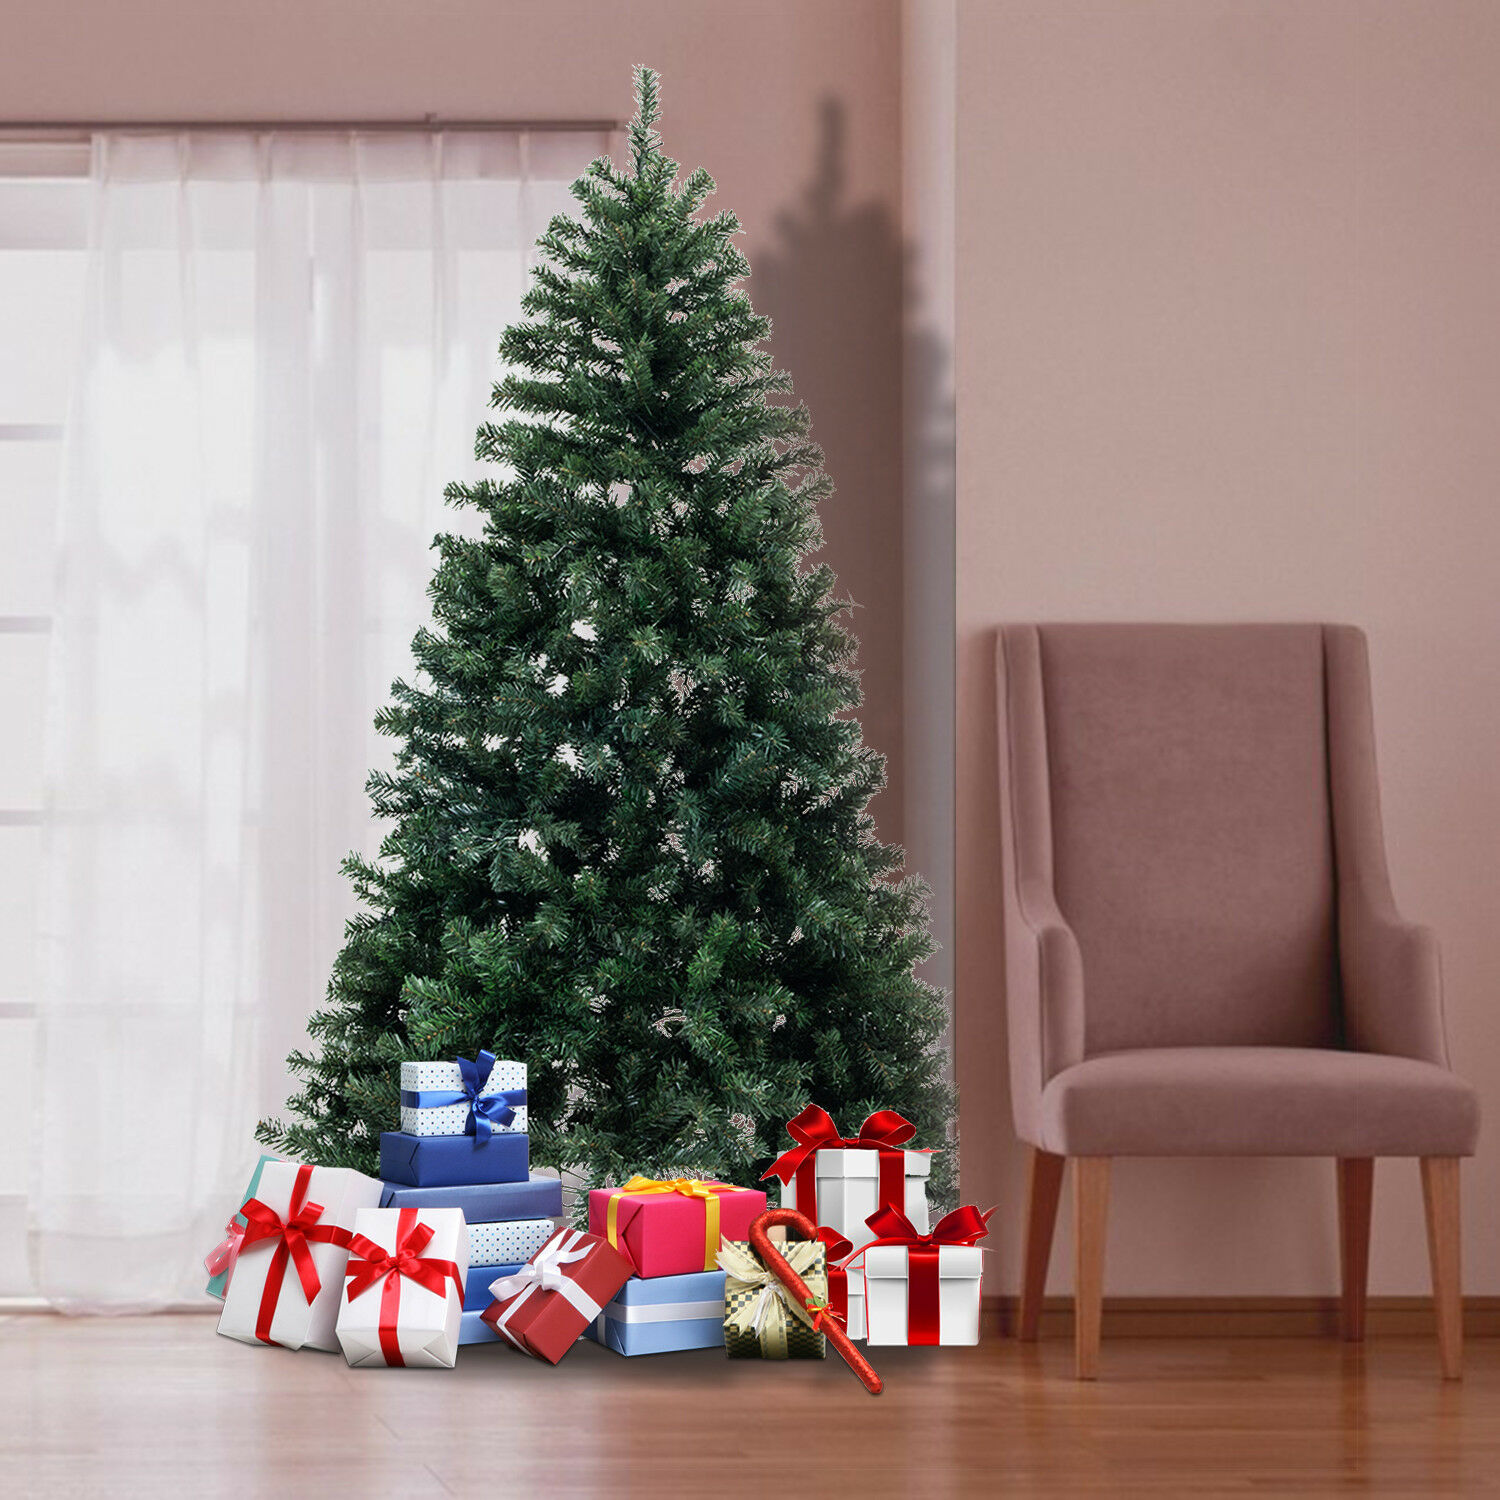 Tall Christmas Tree Decorating Ideas.Details About 6ft Artificial Green Christmas Tree Tall Decoration Holiday Festival Xmas New